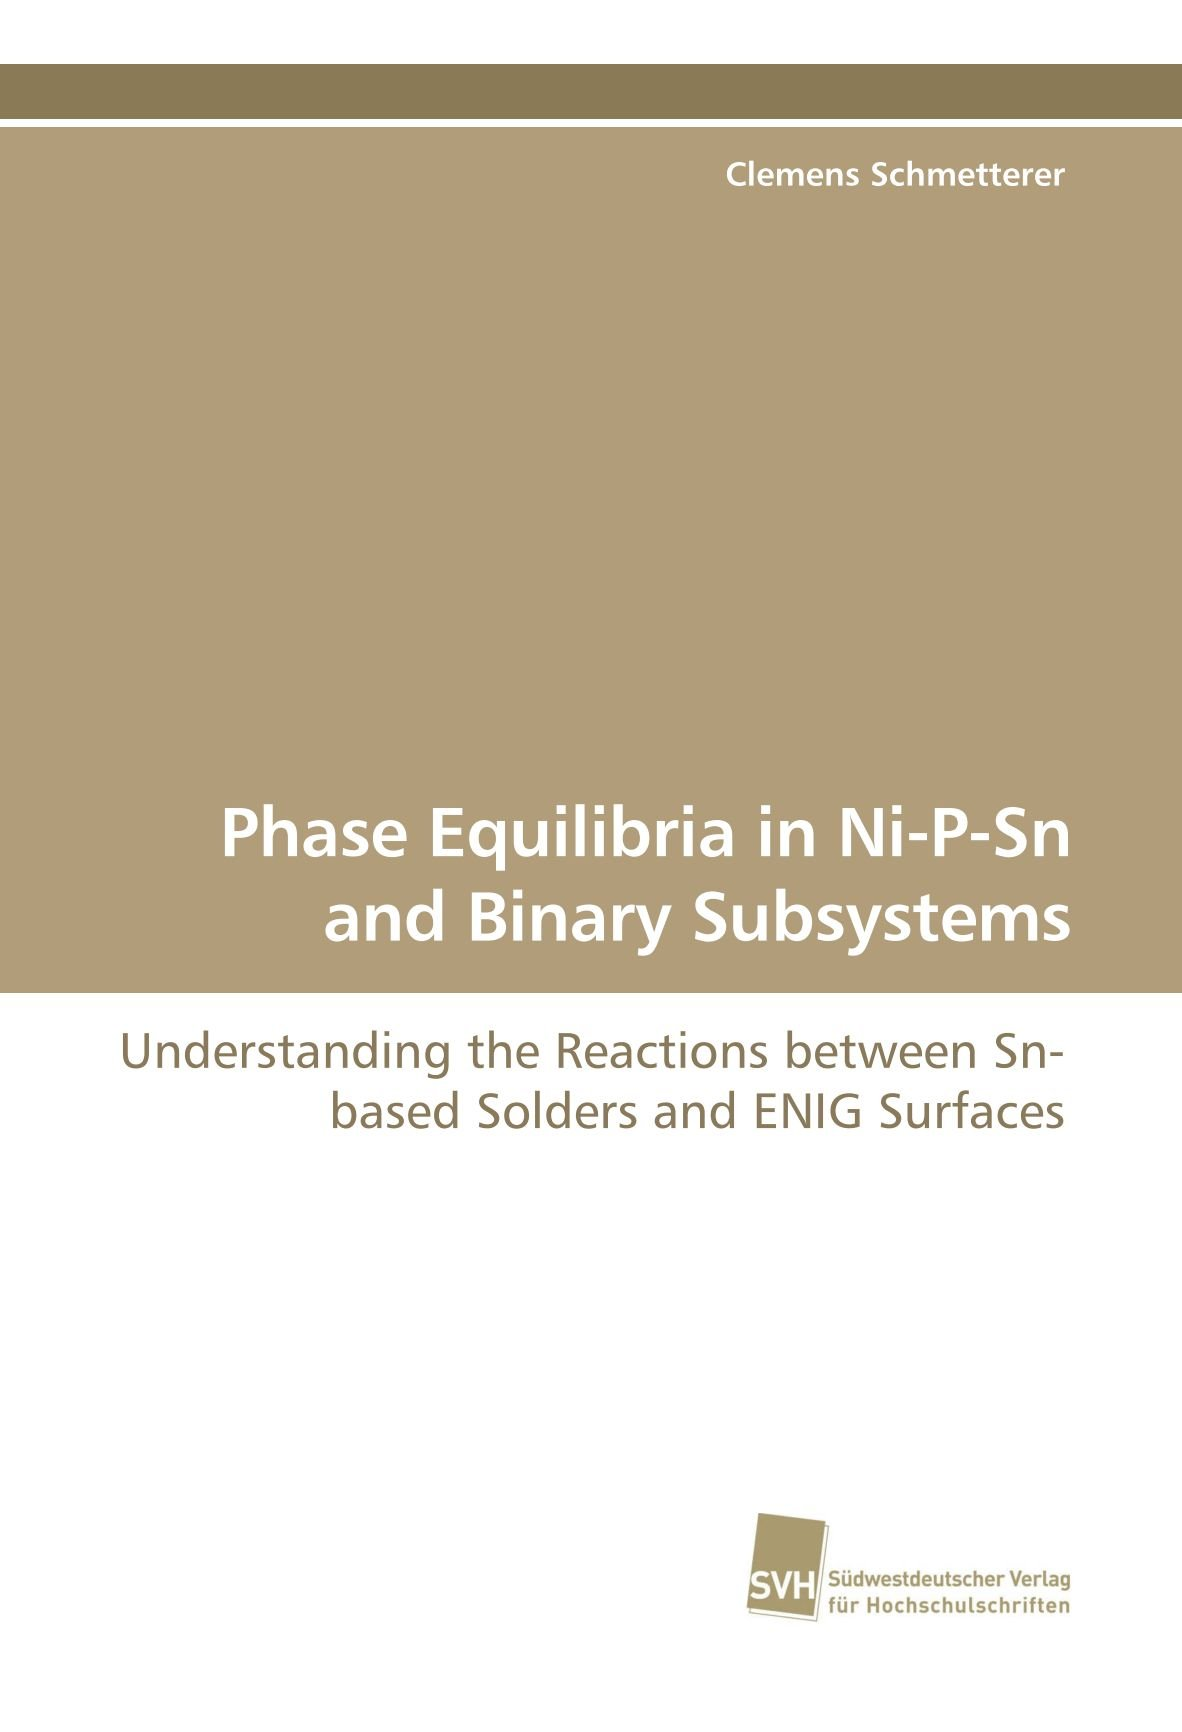 Phase Equilibria in Ni-P-Sn and Binary Subsystems: Understanding the Reactions  between Sn-based Solders and ENIG Surfaces: Amazon.co.uk: Clemens ...